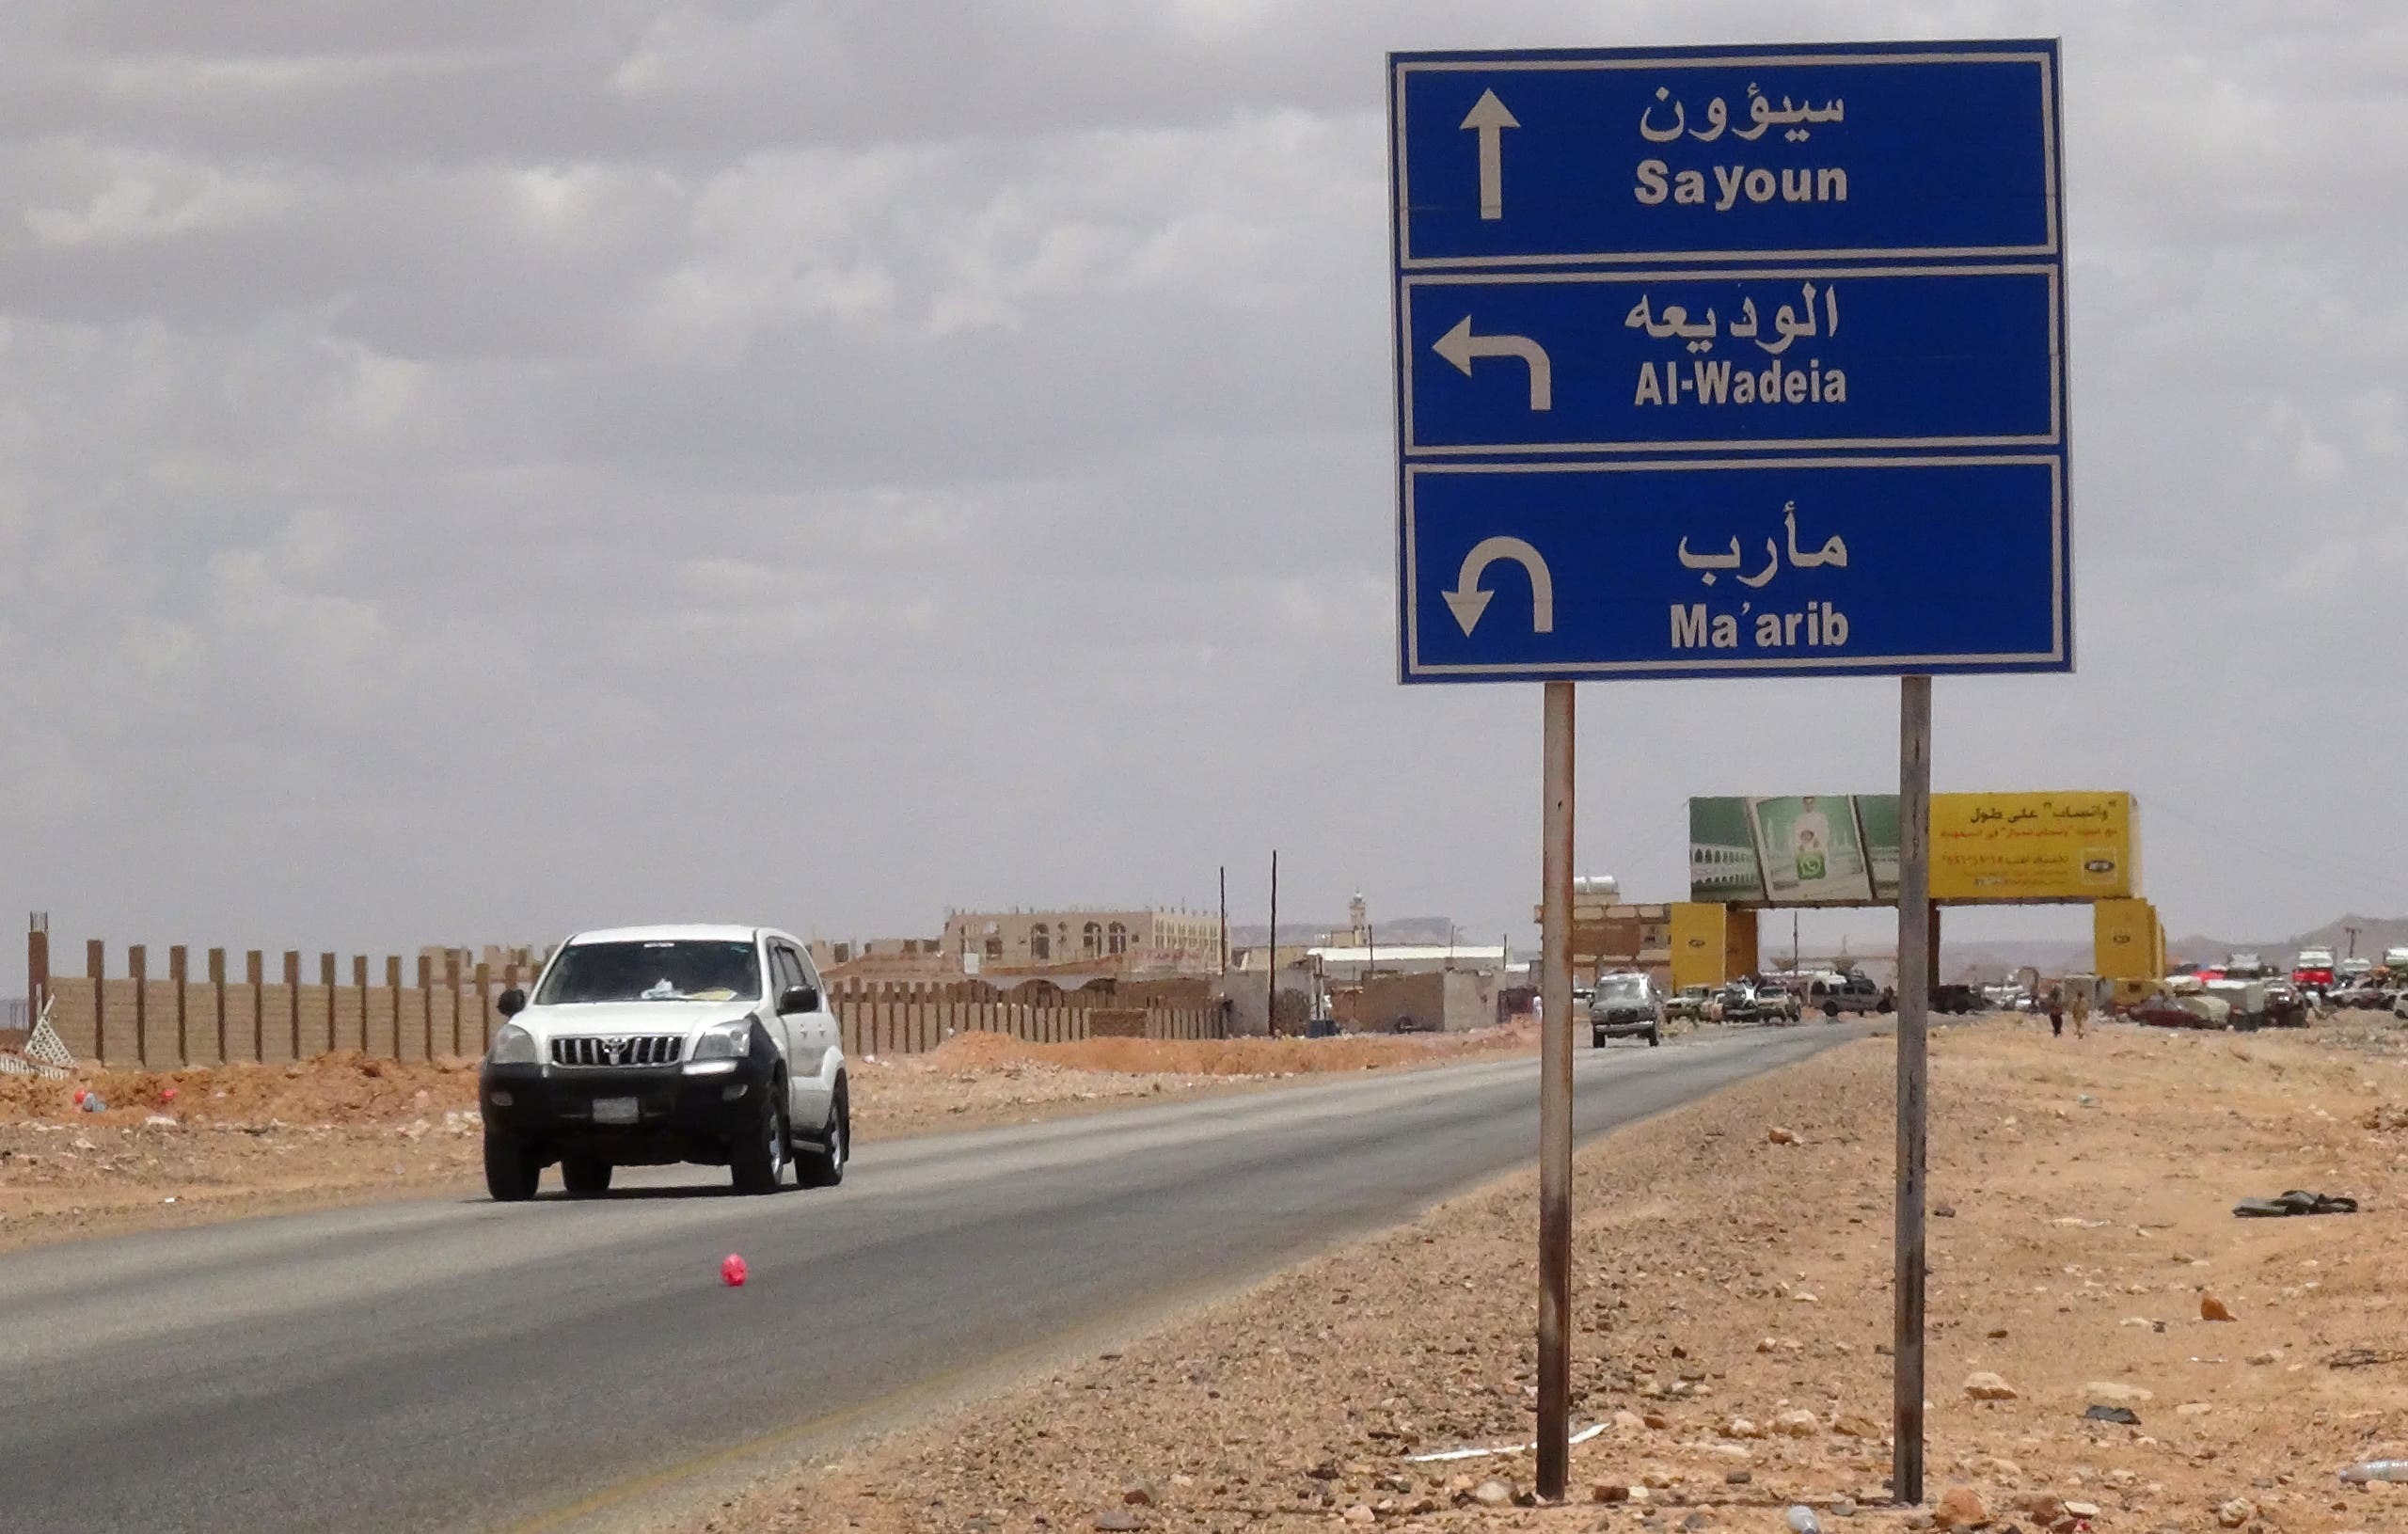 Cars drive on the road leading Yemen's southern Marib province after crossing the Al-Wadeia checkpoint near the Yemen-Saudi border. (File photo: AFP)